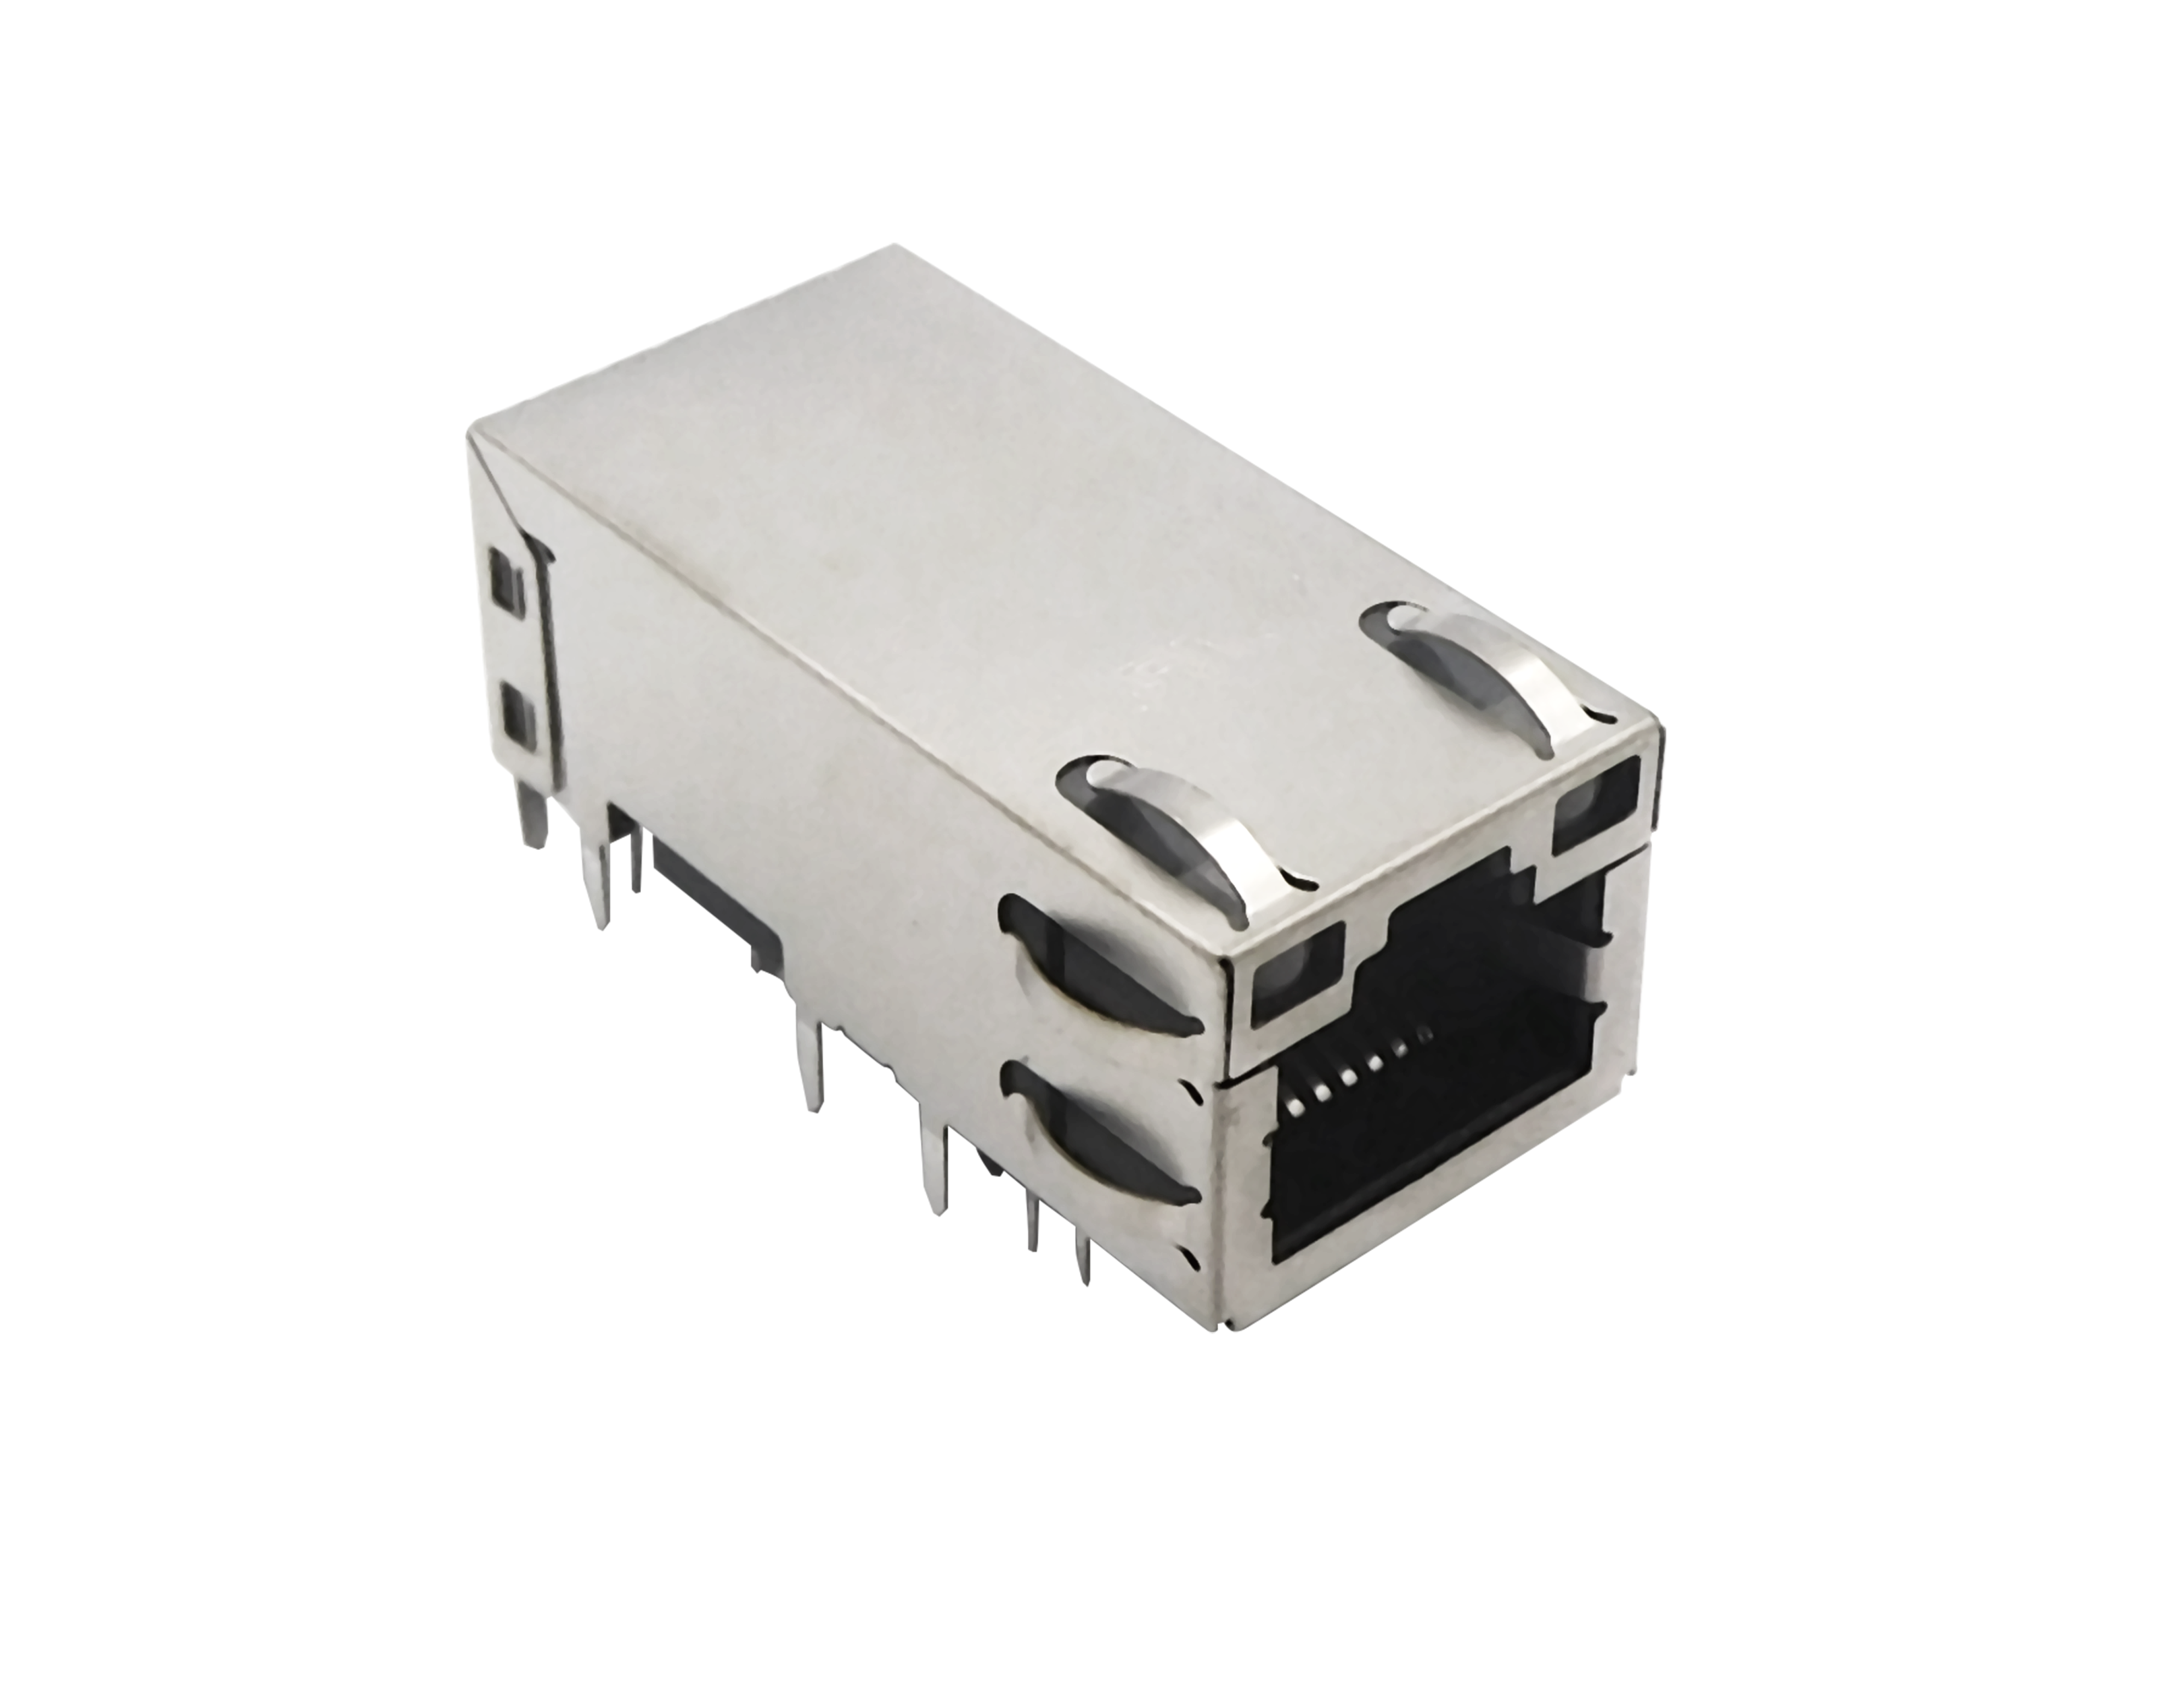 Bel Magnetic Solutions Introduces Single--Port 60W PoE ICMs